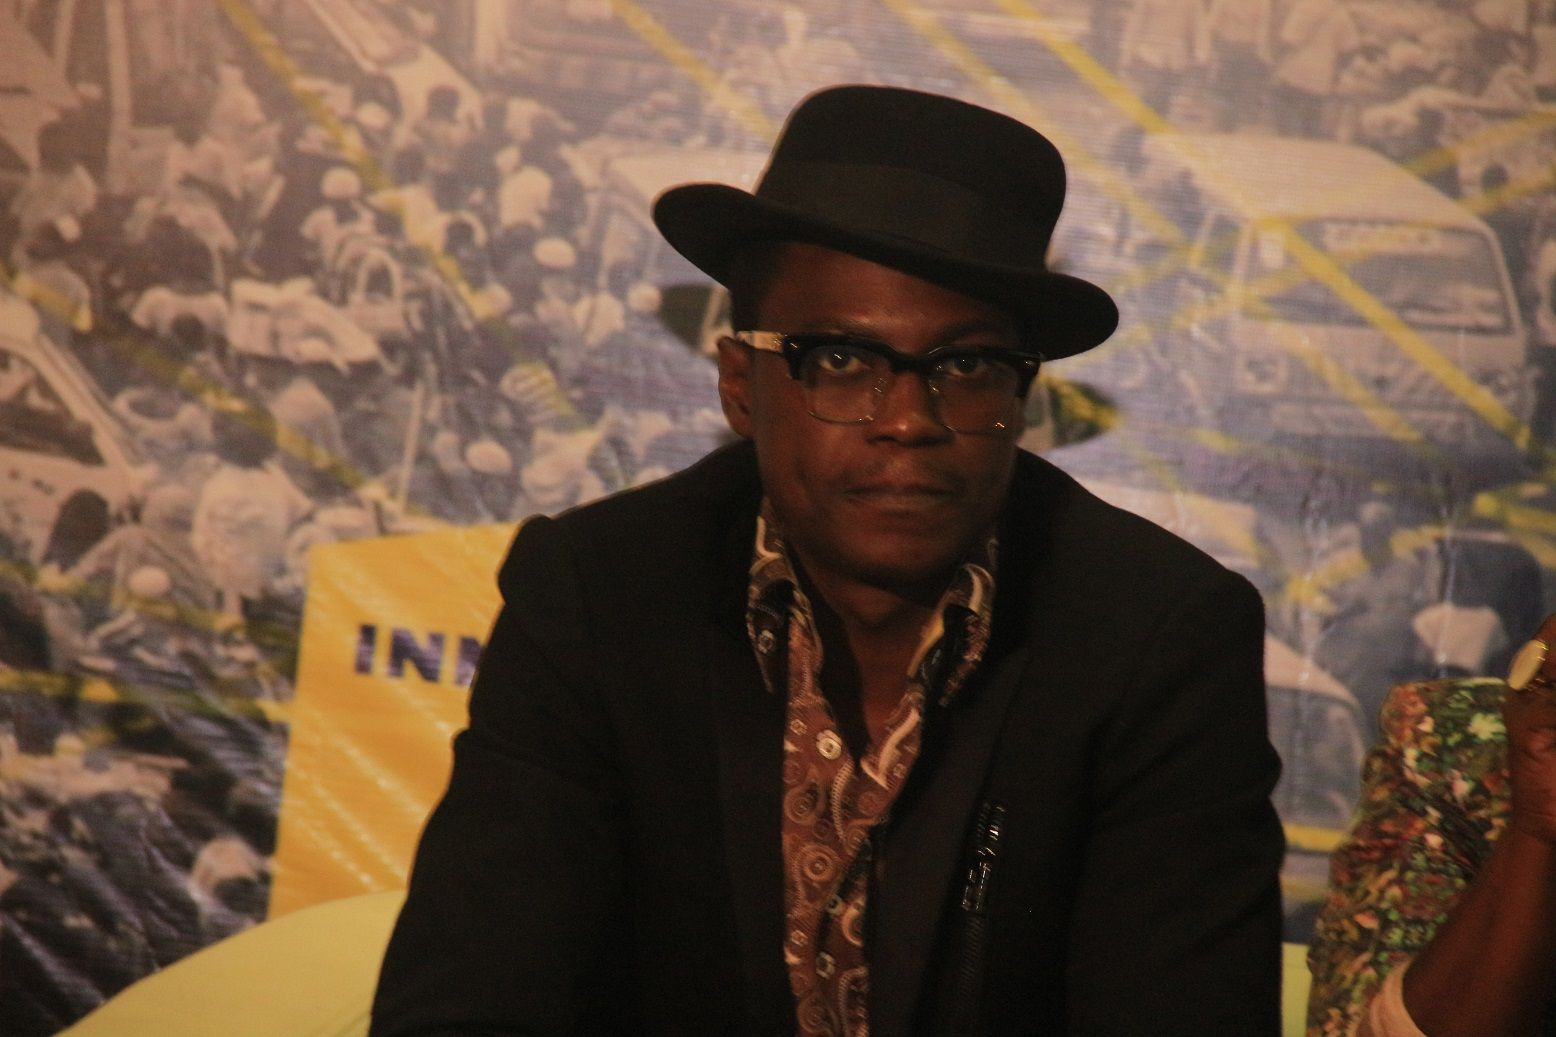 Sound Sultan: Streaming will check piracy in Nigeria